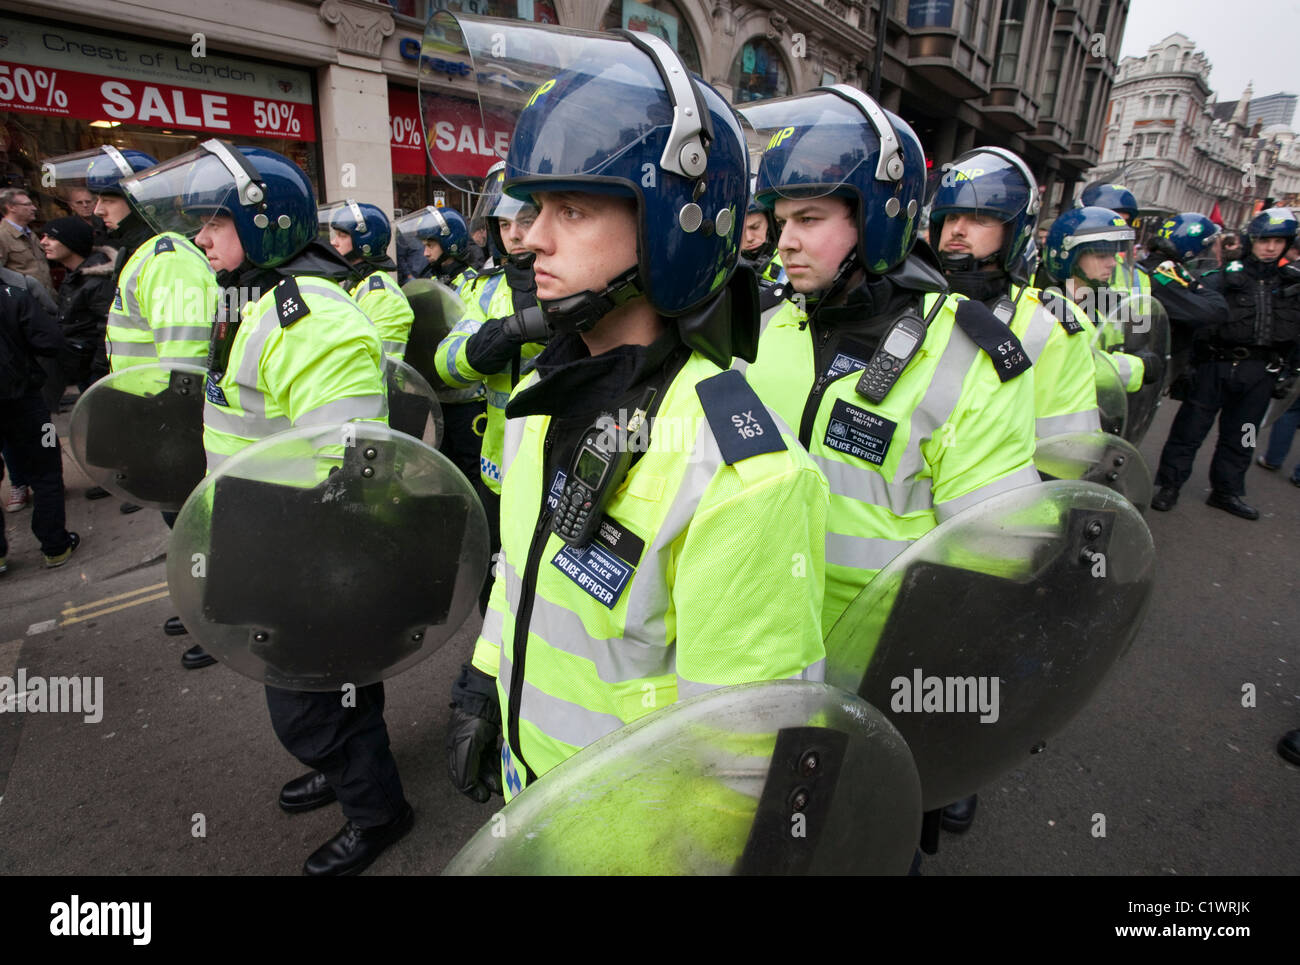 Riot Police on standby during the Anti-Cuts demonstrations in London. 26/03/2011 - Stock Image